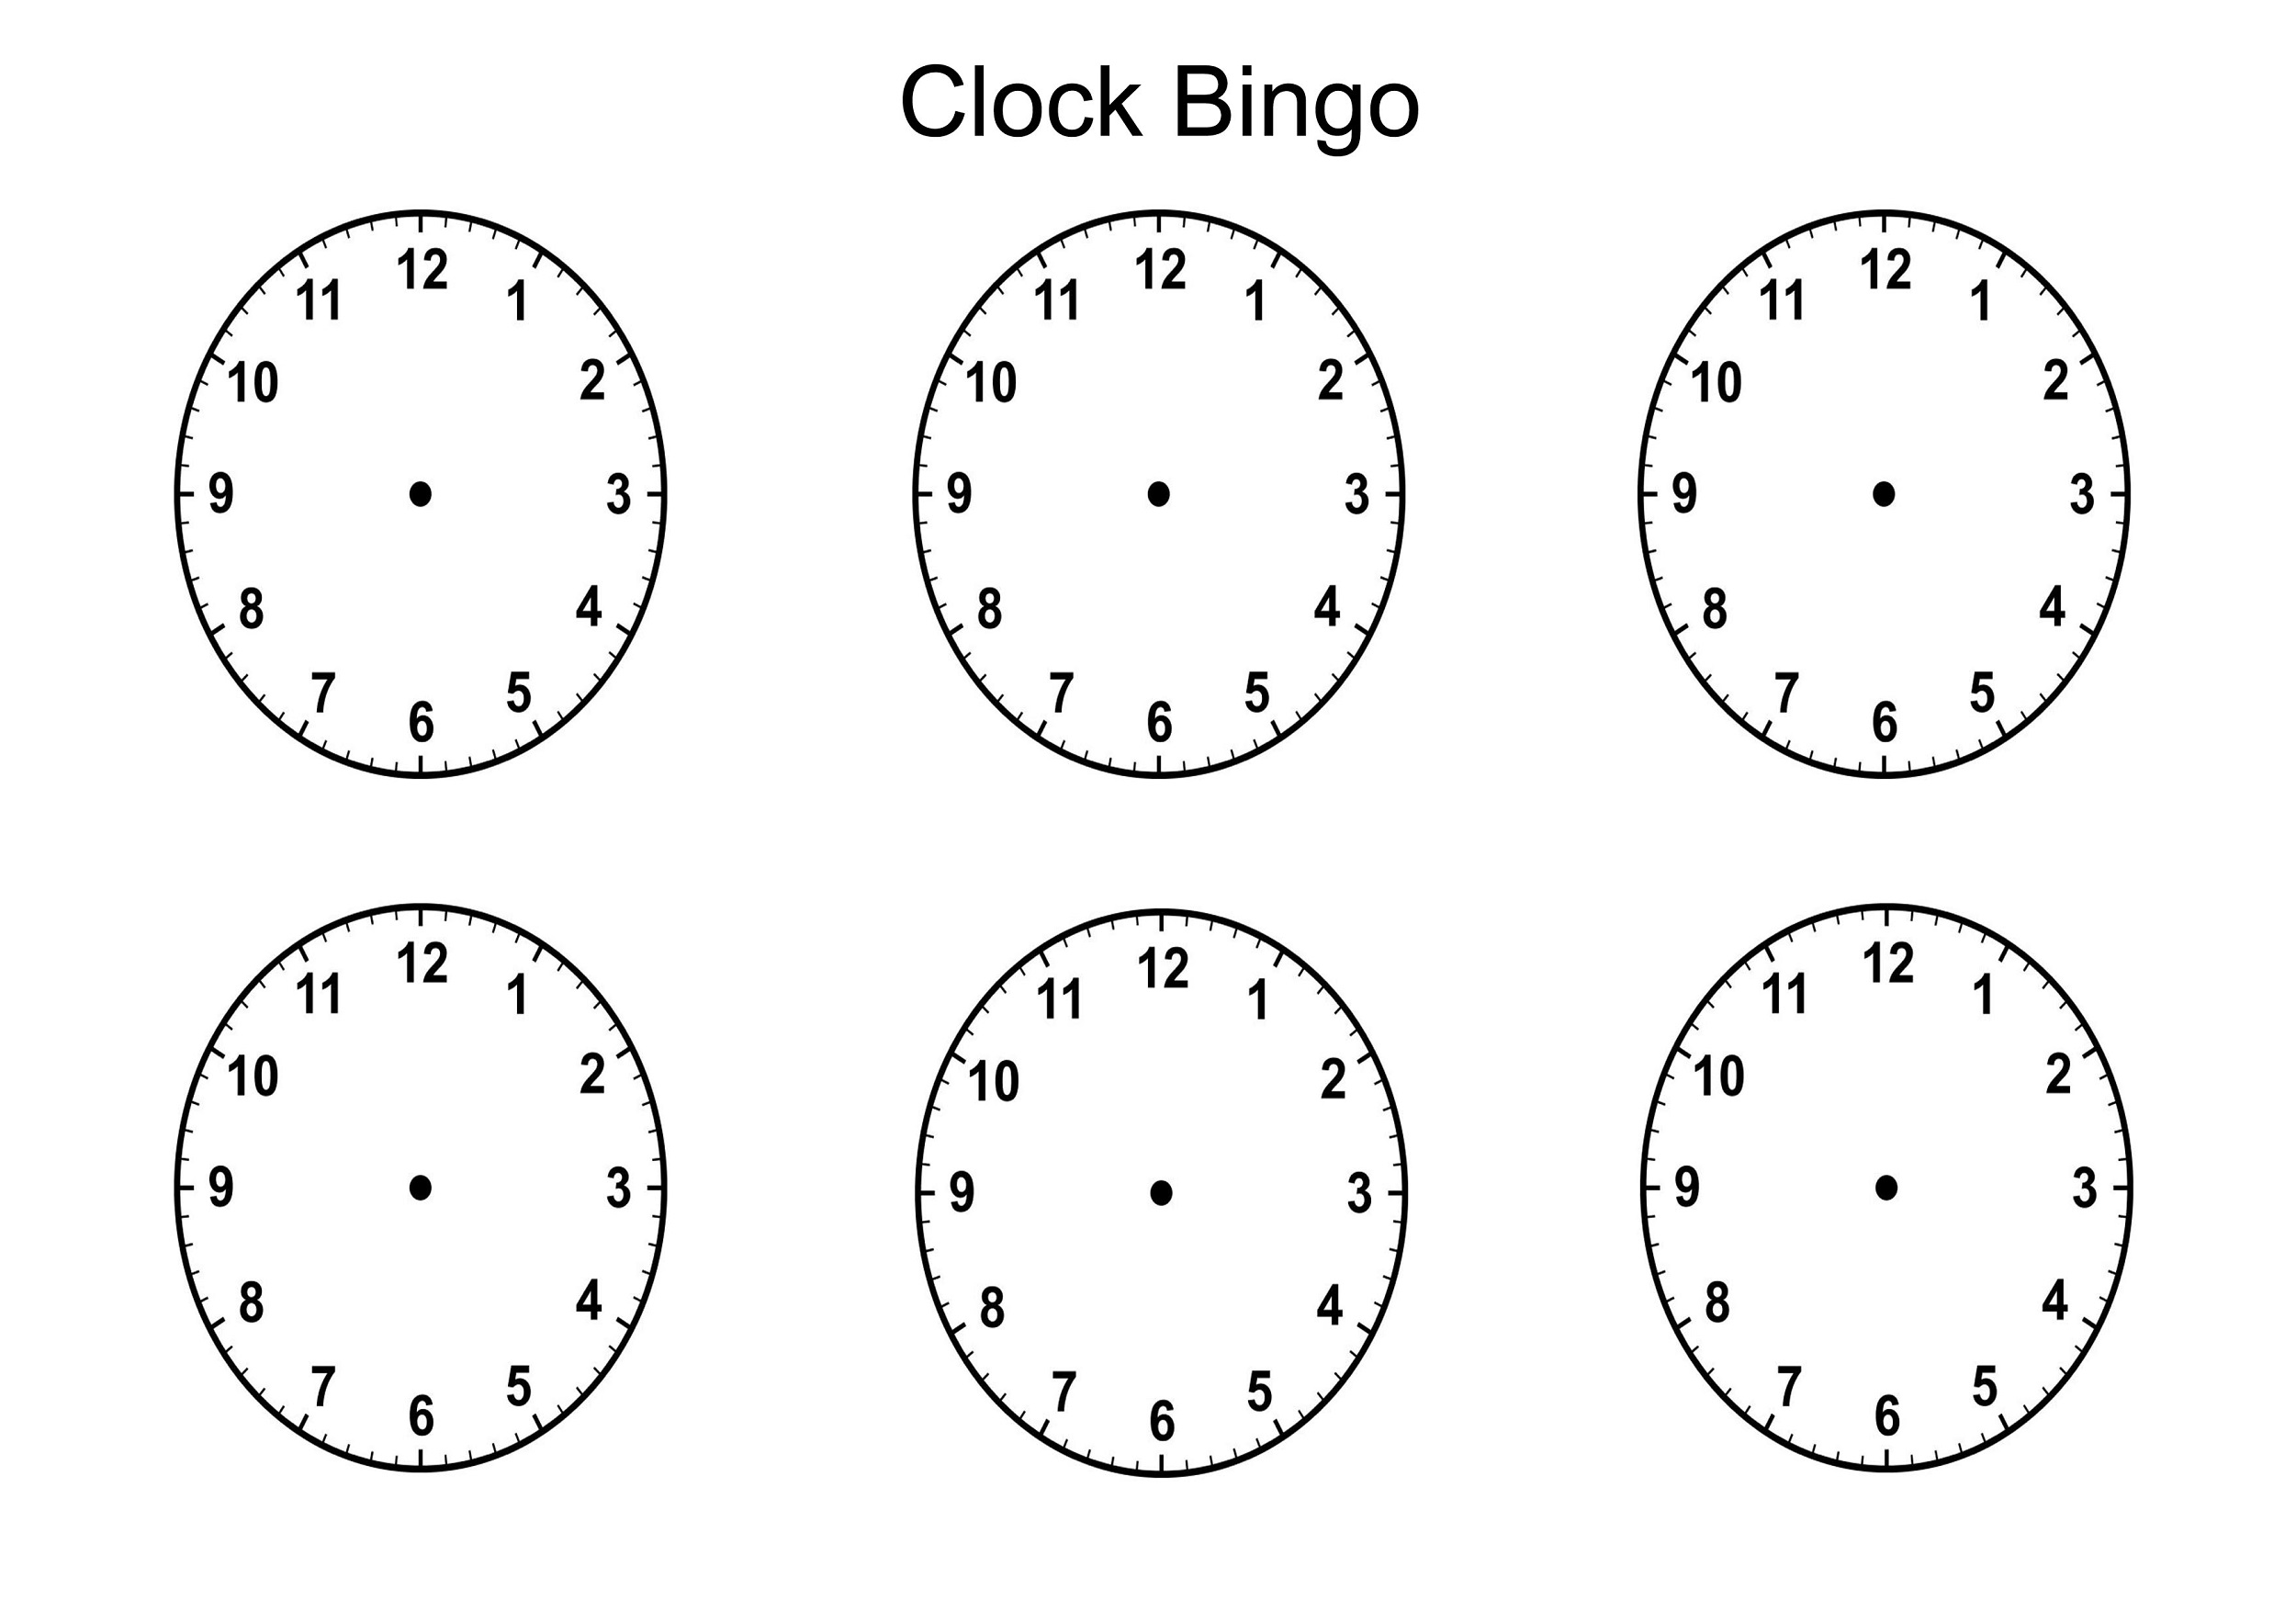 blank-clock-face-template-bingo